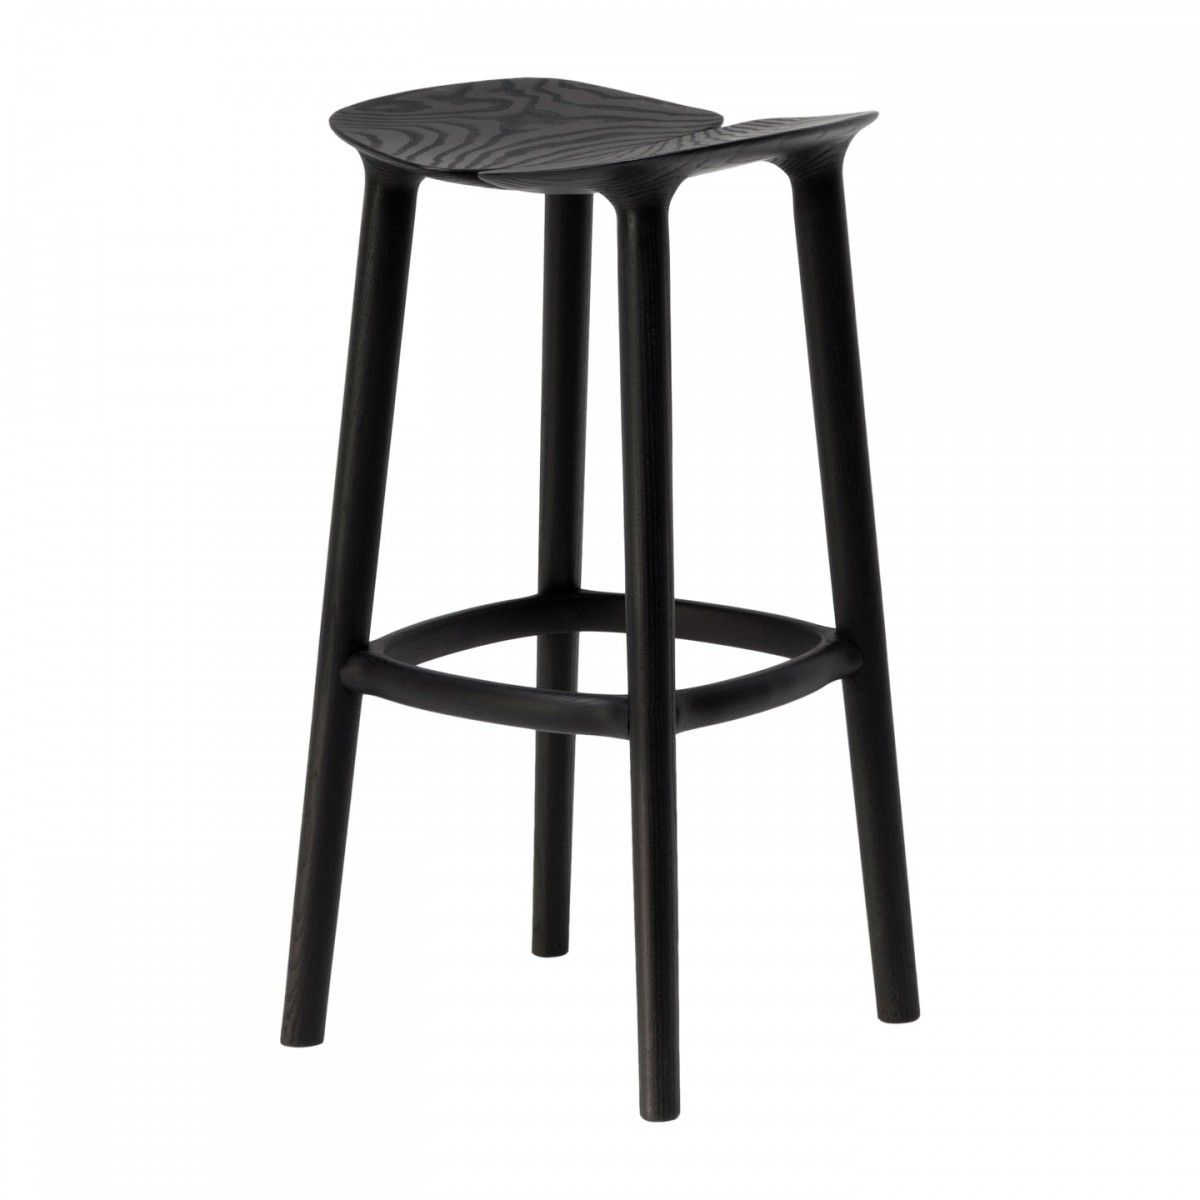 Osso Barstool - Stools/Benches - Chairs - Furniture | 03 Furniture ...